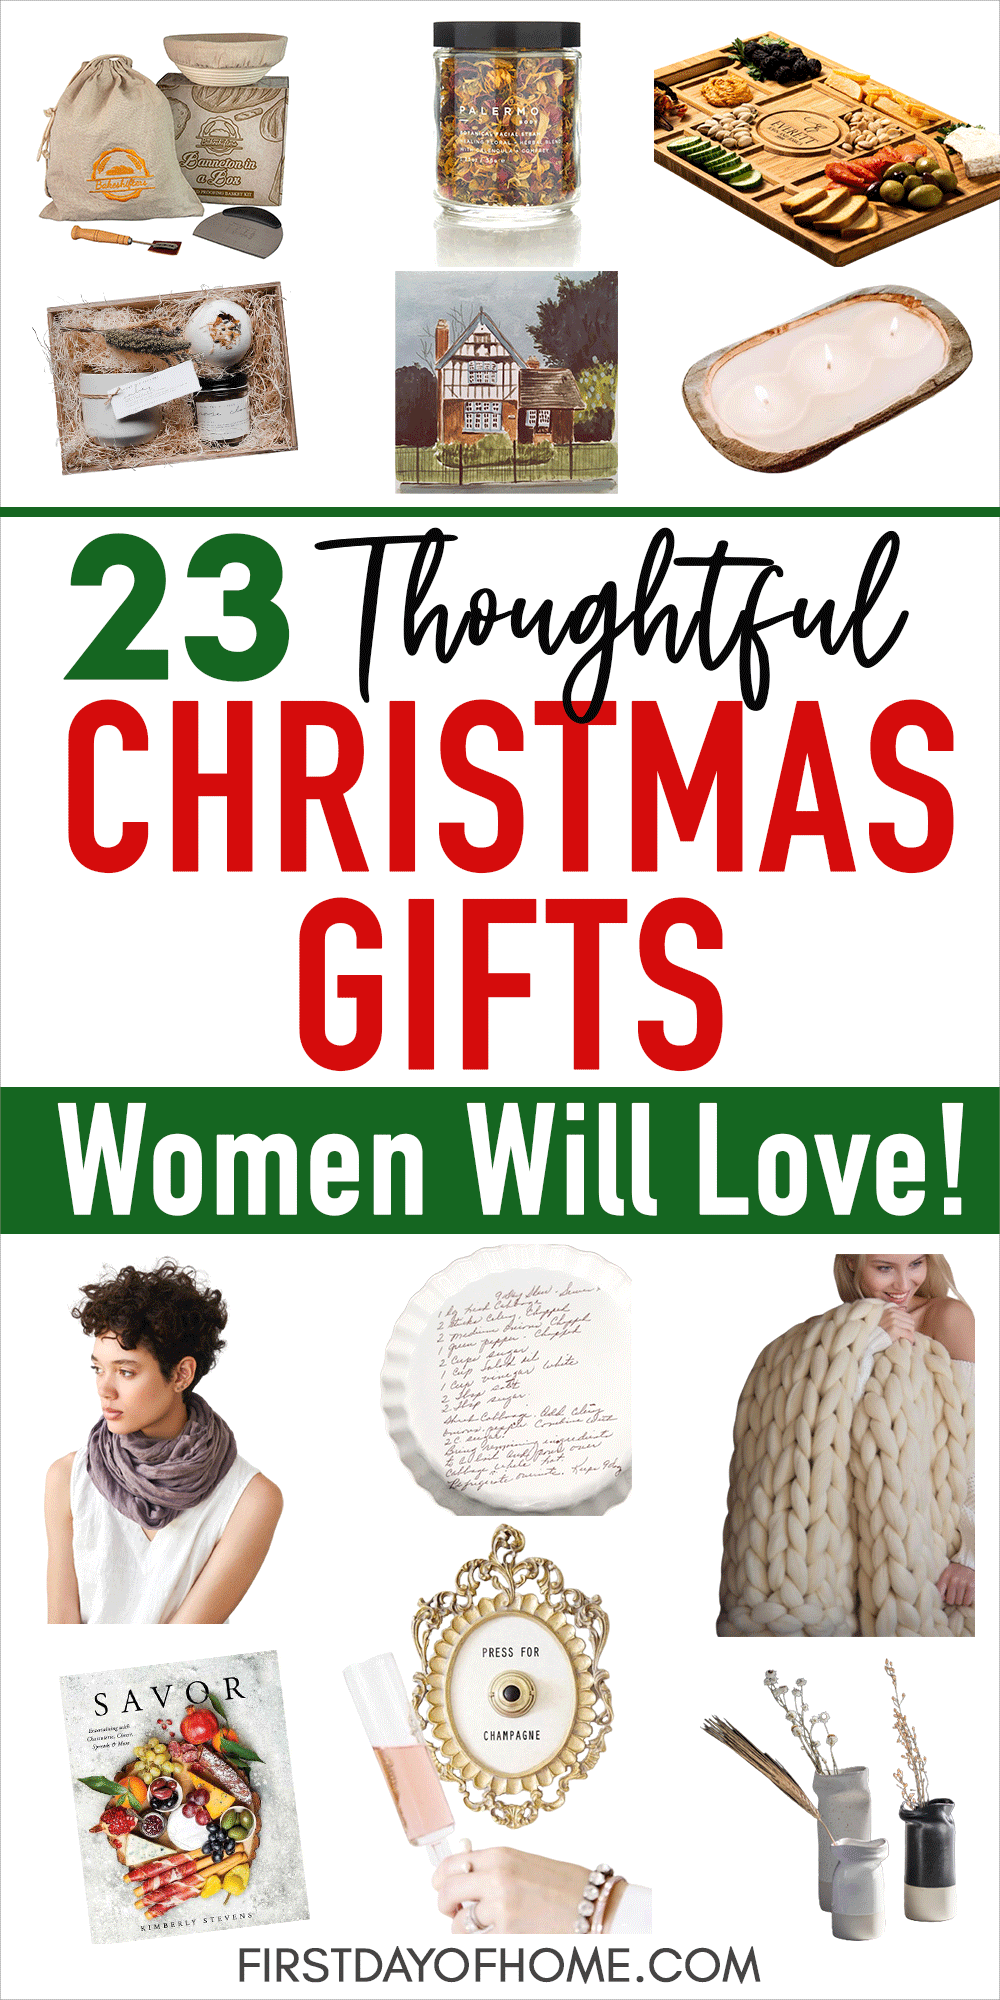 "Product images with Christmas gifts for women and the title ""23 Thoughtful Christmas Gifts Women Will Love"""